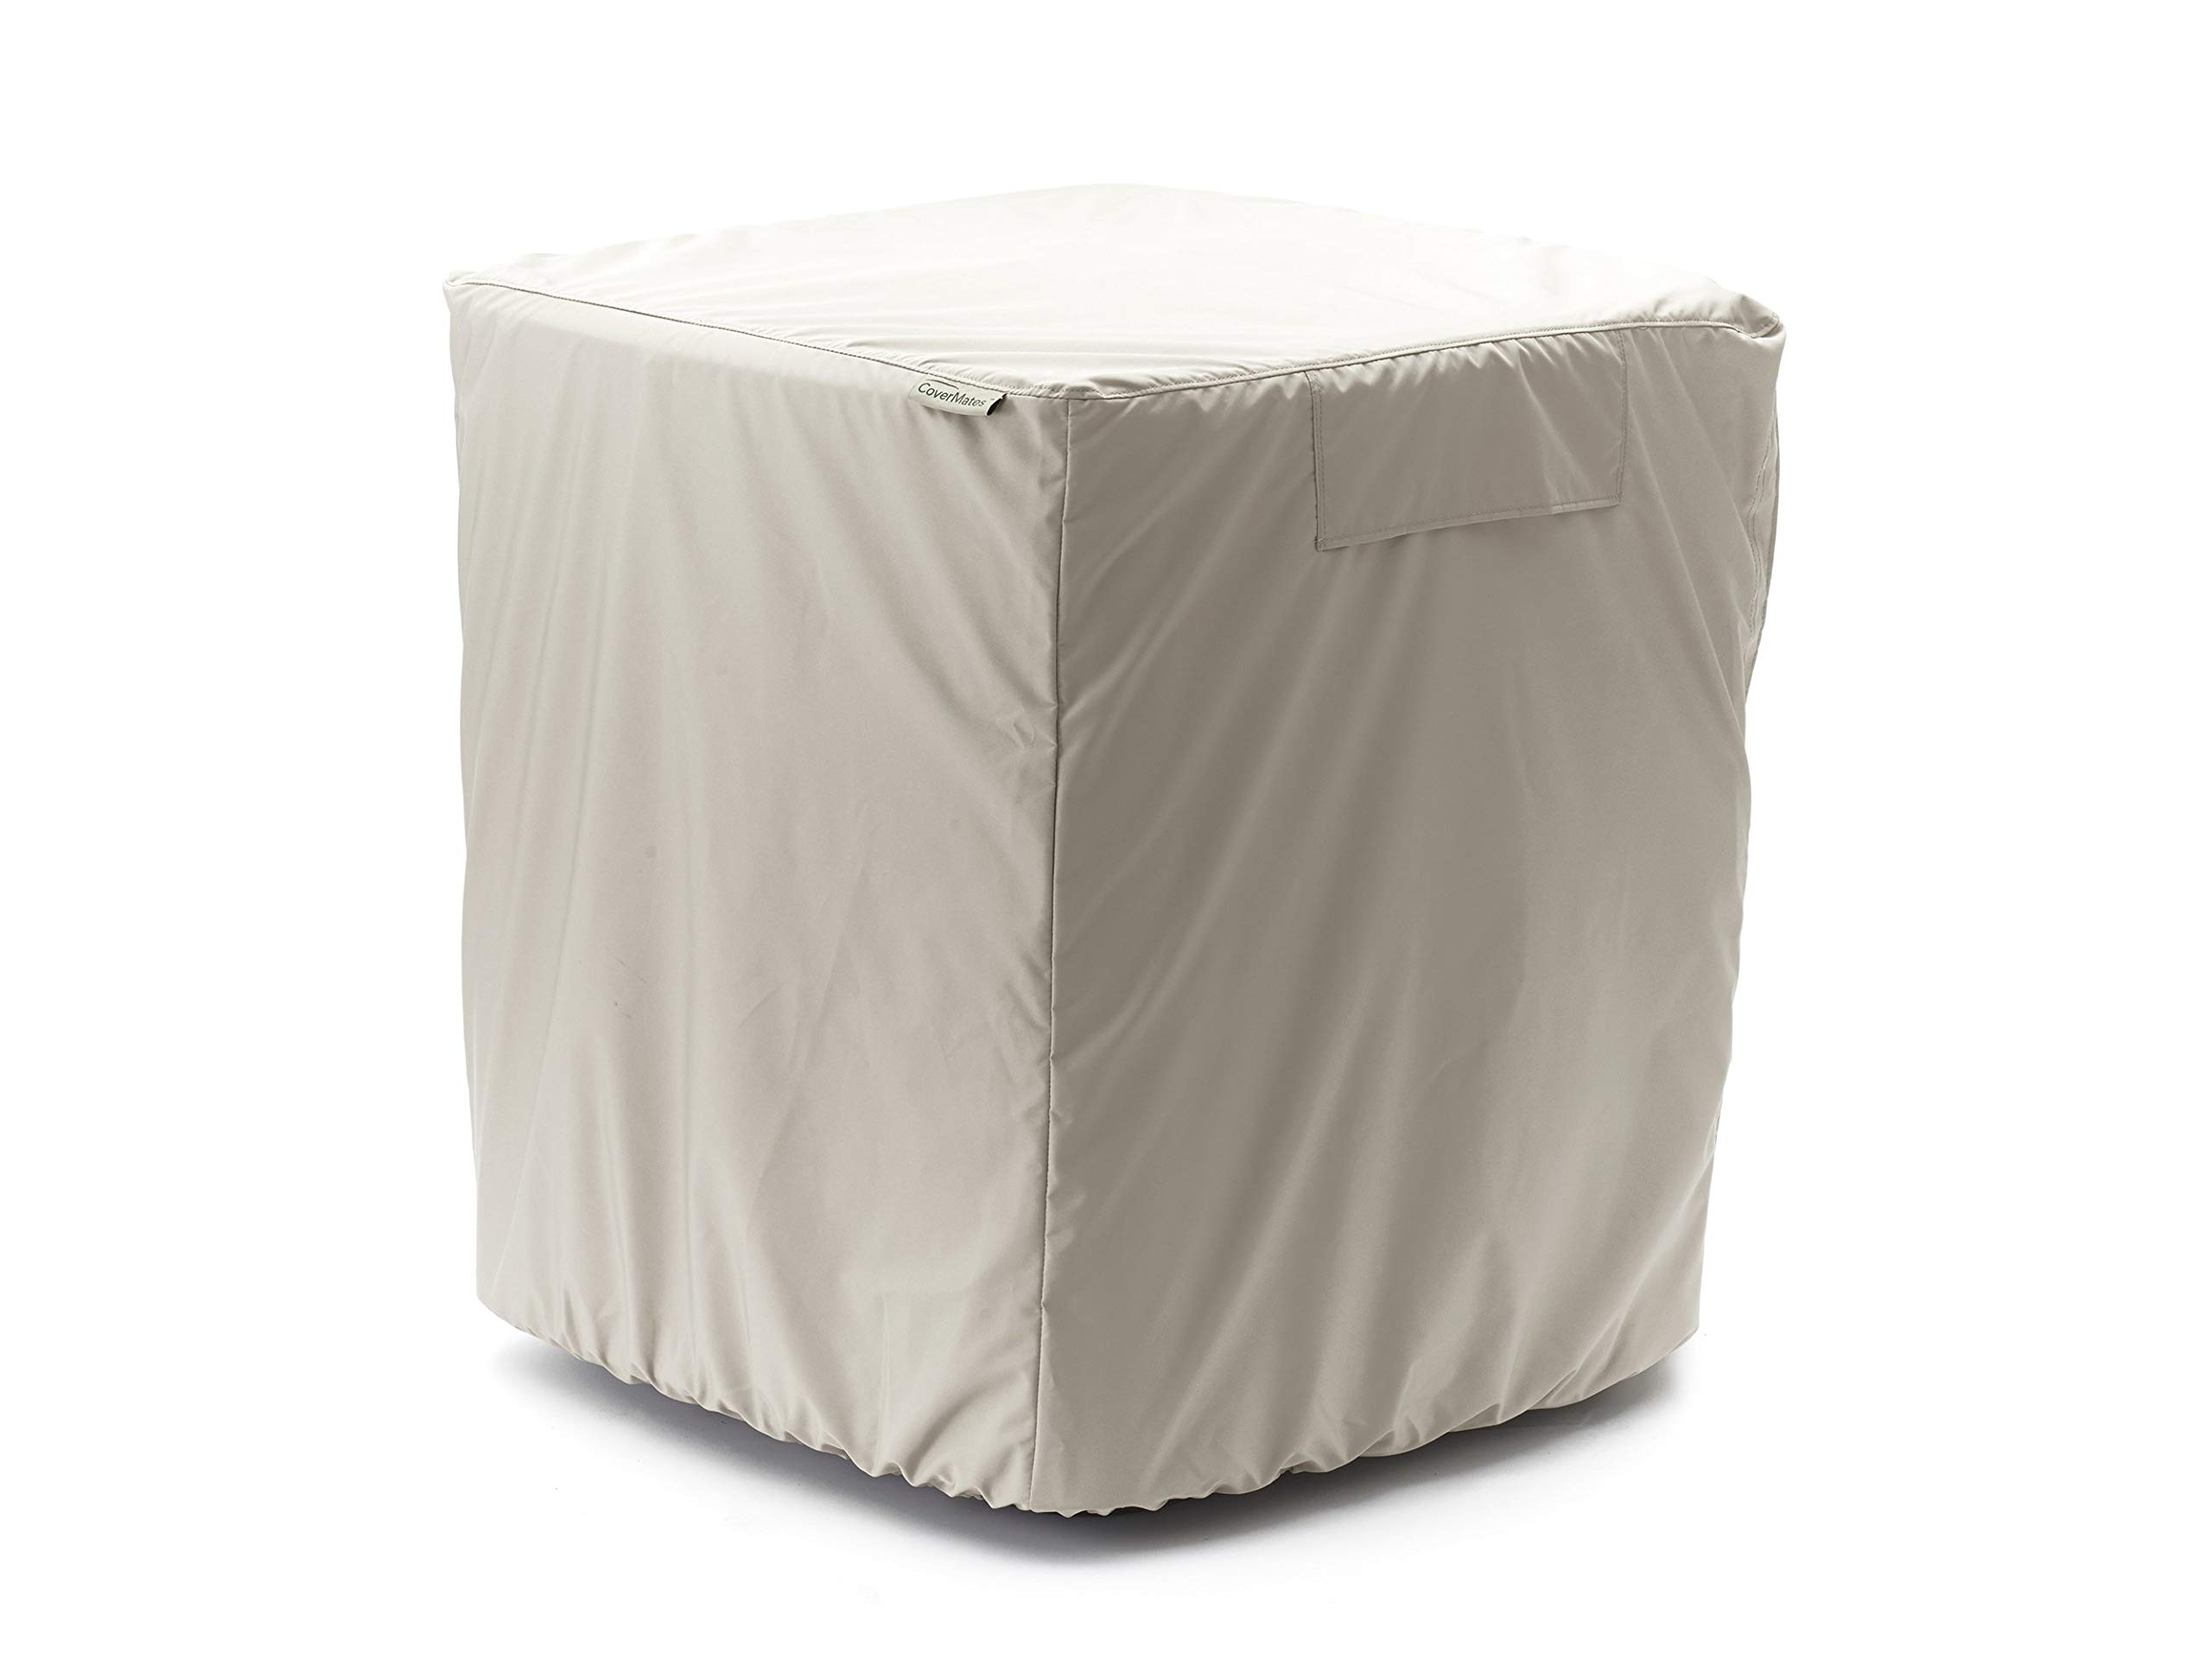 Covermates - Air Conditioner Cover - AC Cover for Outdoor Protection - Water Resistant and Weatherproof - Khaki by Covermates